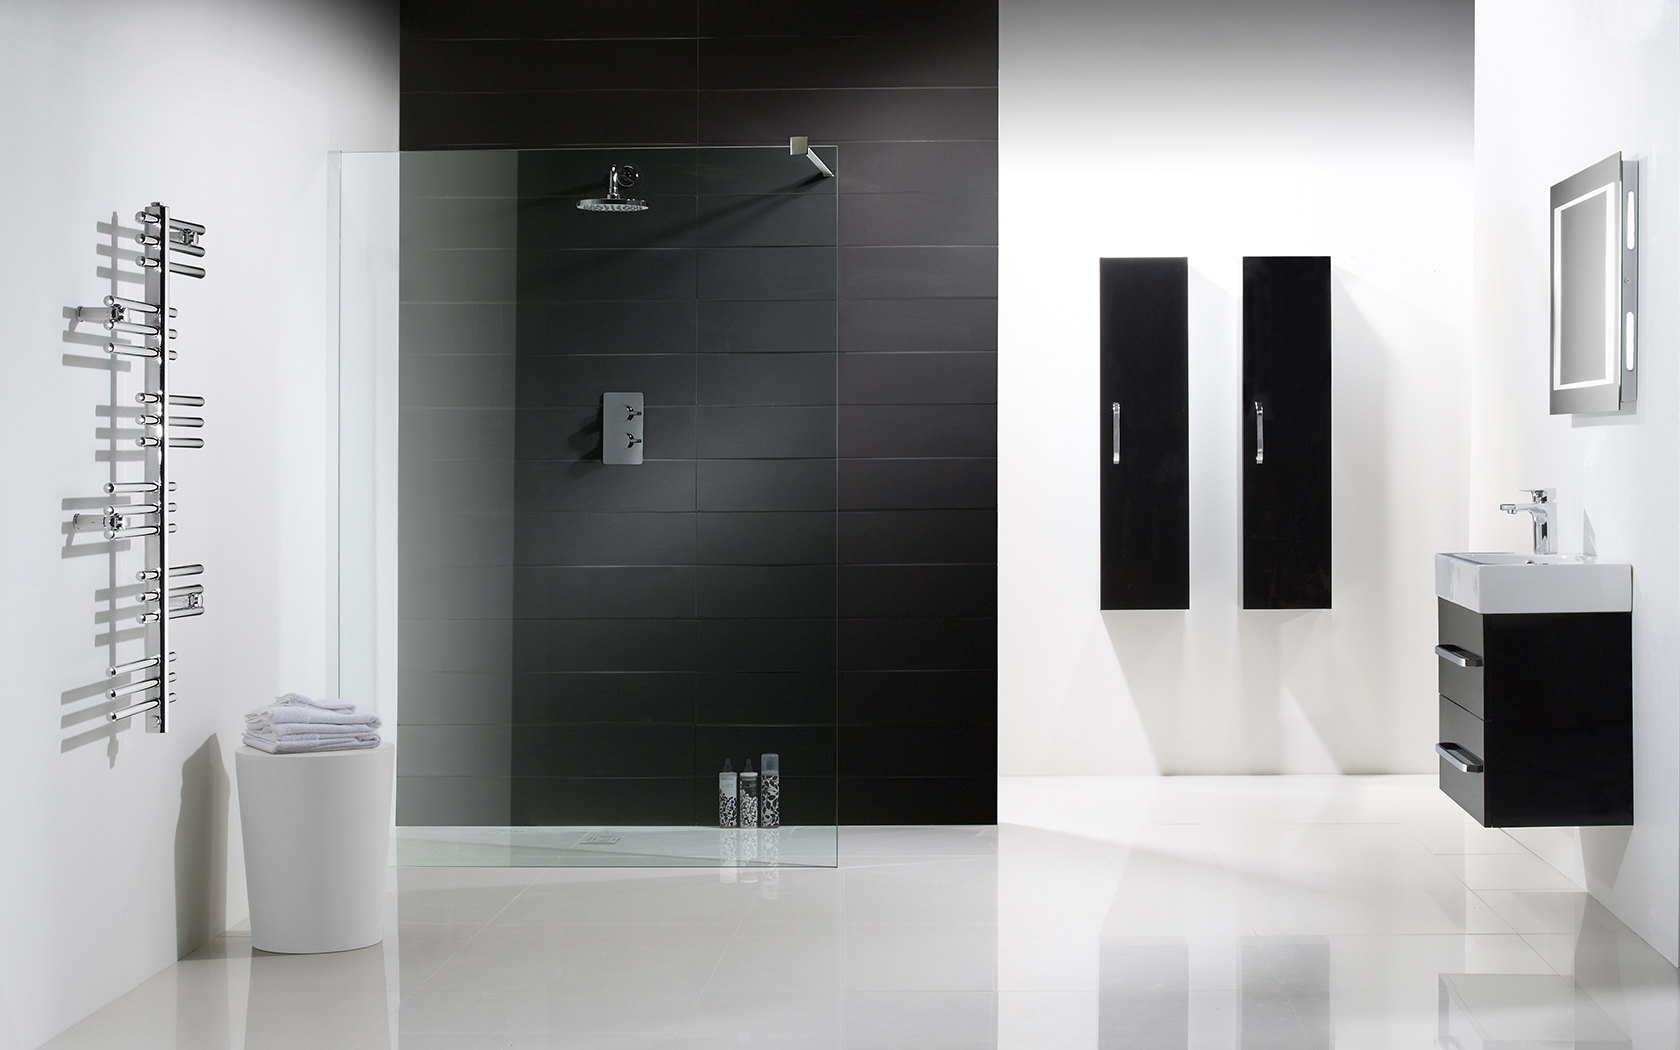 Tavistock offers an Unmatched Collection of Bathroom Furniture and Sanitaryware